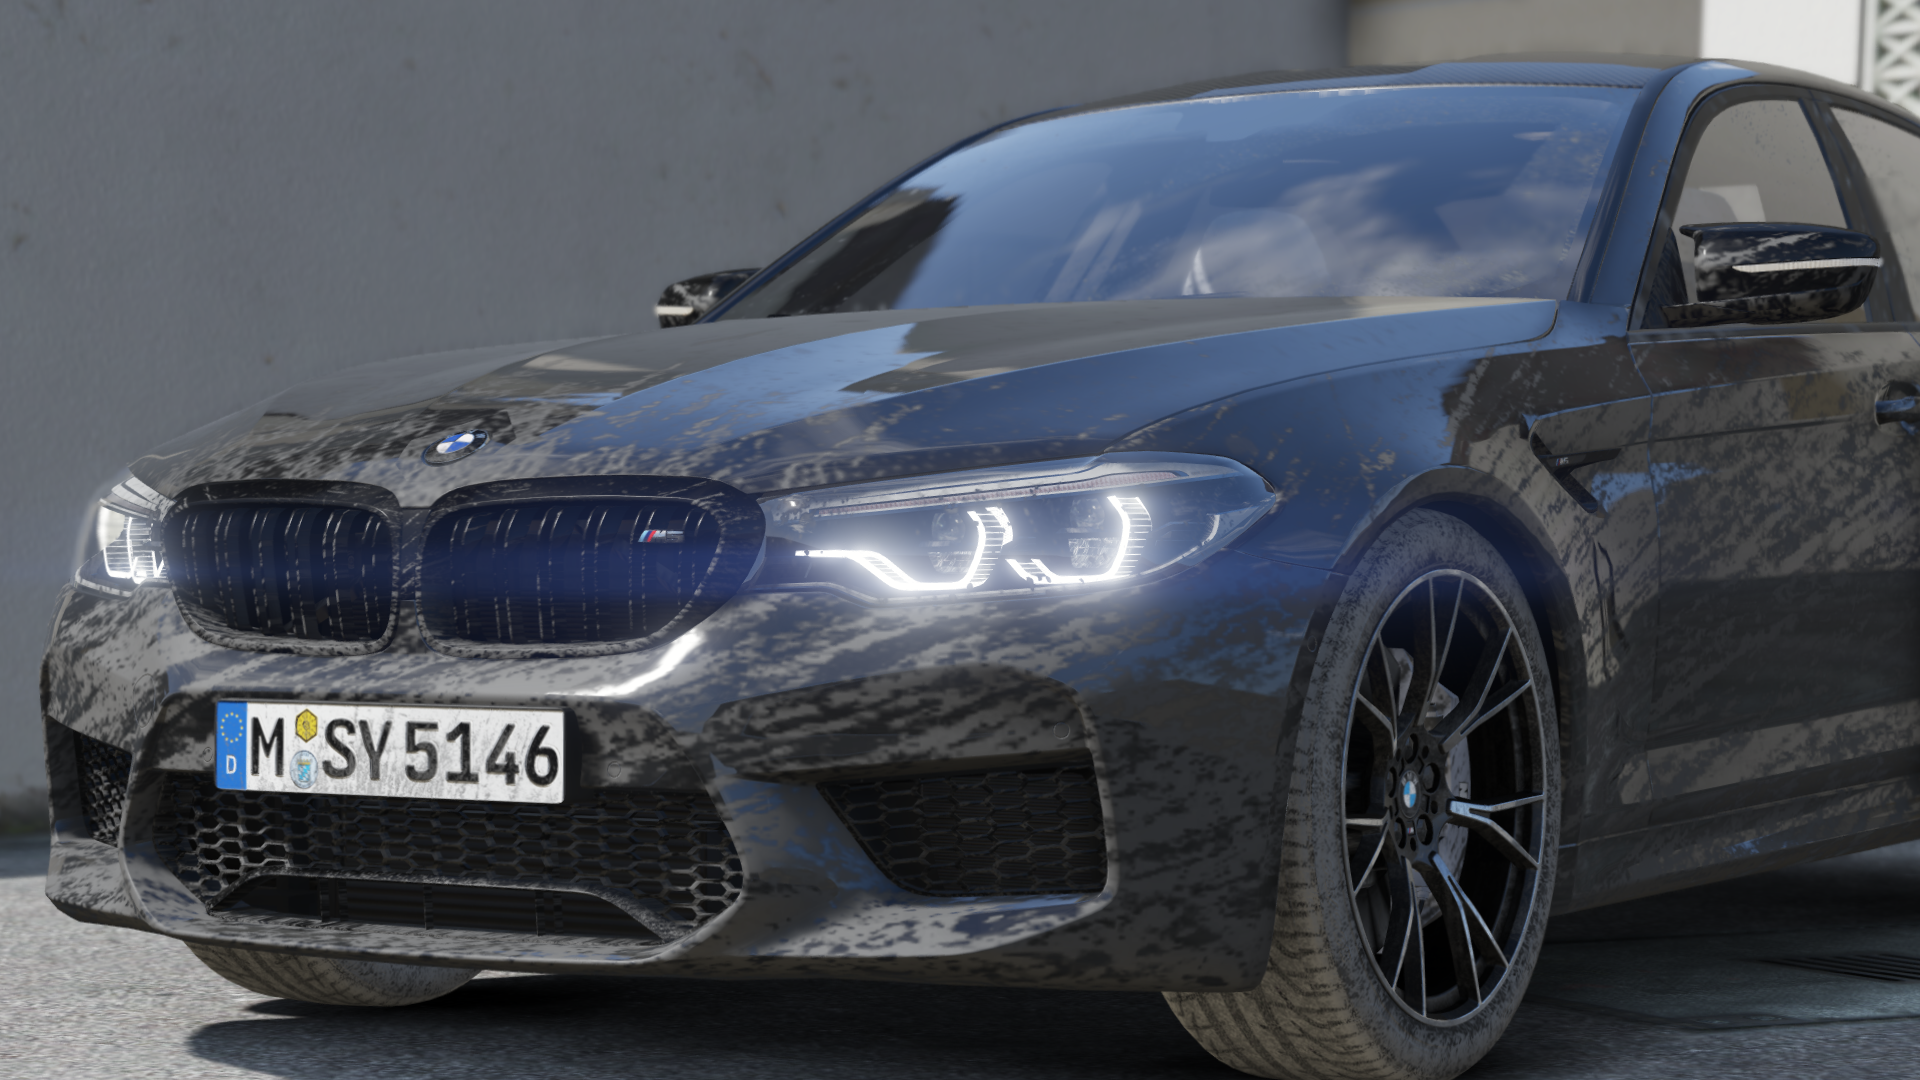 2019 Bmw M5 F90 Competition Add On Template Gta5 Mods Com